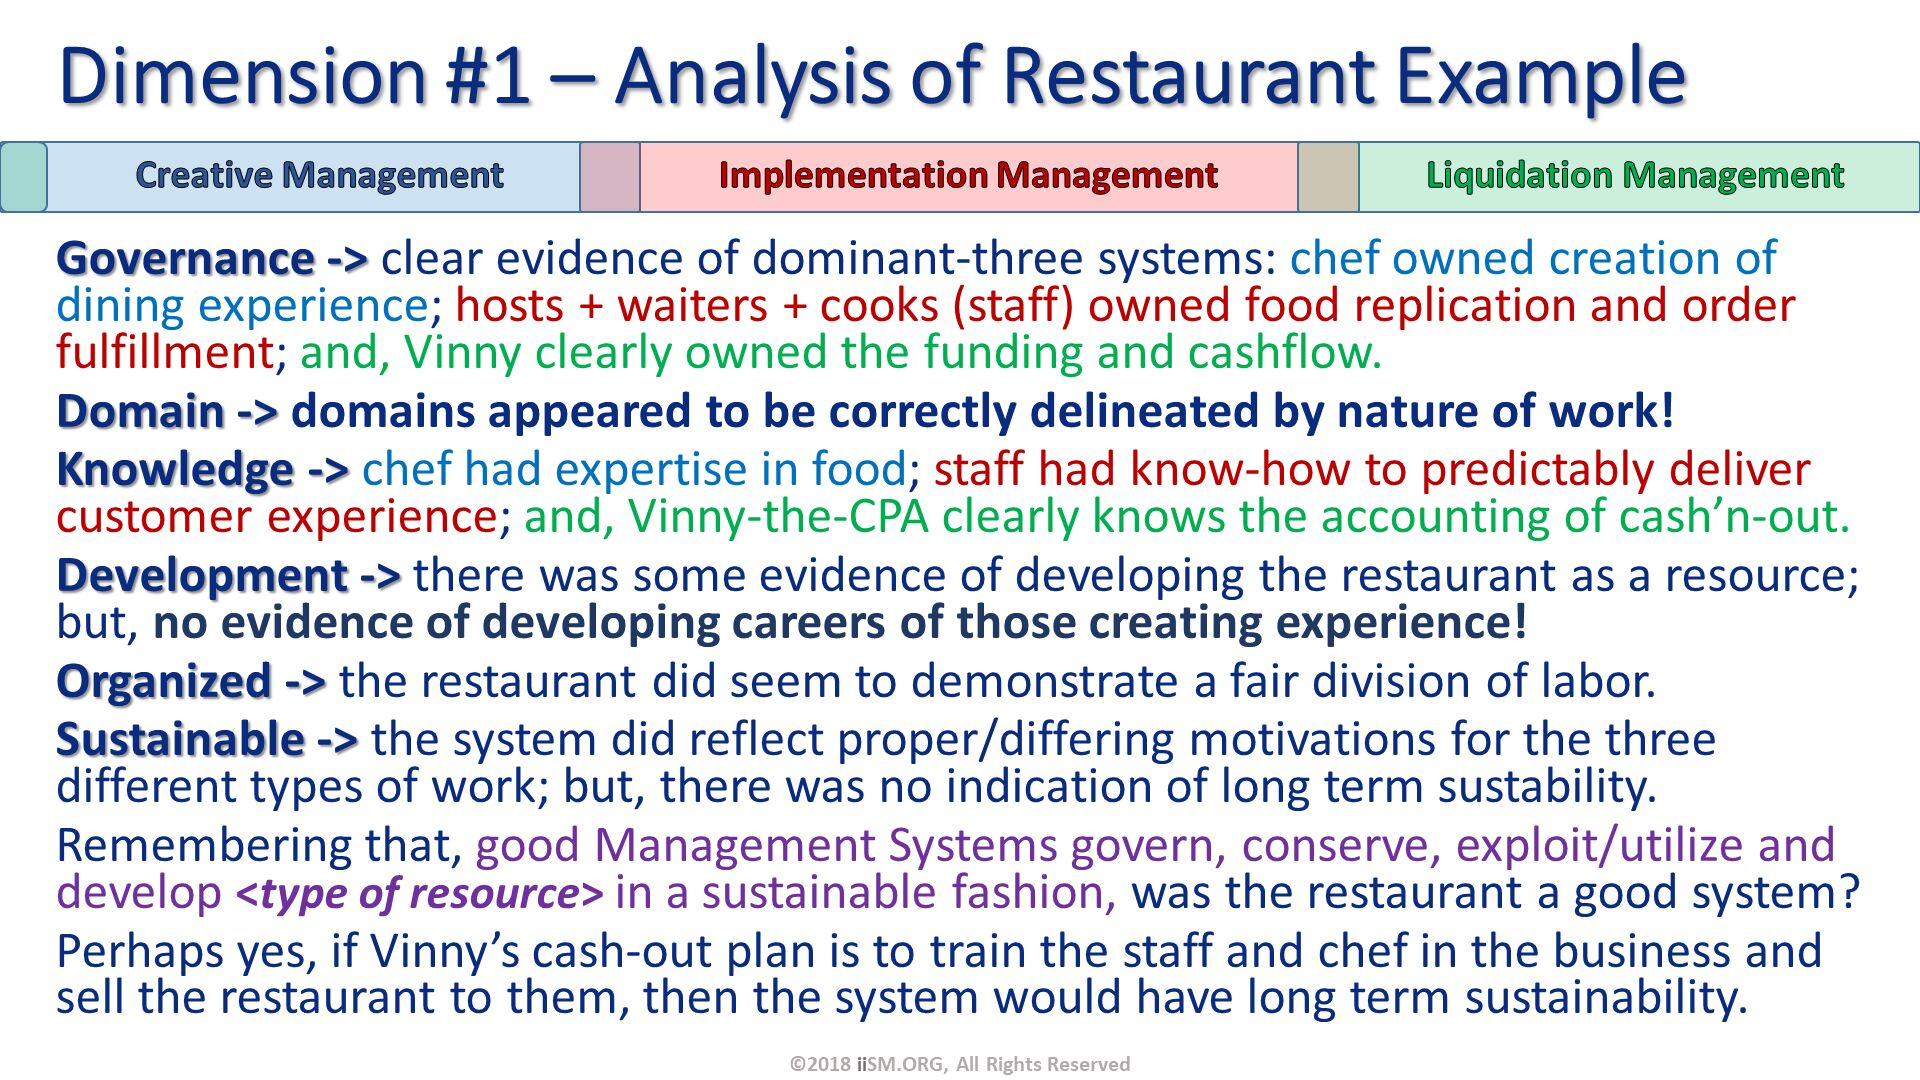 Governance -> clear evidence of dominant-three systems: chef owned creation of dining experience; hosts + waiters + cooks (staff) owned food replication and order fulfillment; and, Vinny clearly owned the funding and cashflow. Domain -> domains appeared to be correctly delineated by nature of work!  Knowledge -> chef had expertise in food; staff had know-how to predictably deliver customer experience; and, Vinny-the-CPA clearly knows the accounting of cash'n-out. Development -> there was some evidence of developing the restaurant as a resource; but, no evidence of developing careers of those creating experience! Organized -> the restaurant did seem to demonstrate a fair division of labor. Sustainable -> the system did reflect proper/differing motivations for the three different types of work; but, there was no indication of long term sustability.   Remembering that, good Management Systems govern, conserve, exploit/utilize and develop <type of resource> in a sustainable fashion, was the restaurant a good system? Perhaps yes, if Vinny's cash-out plan is to train the staff and chef in the business and sell the restaurant to them, then the system would have long term sustainability. Dimension #1 – Analysis of Restaurant Example. ©2018 iiSM.ORG, All Rights Reserved.